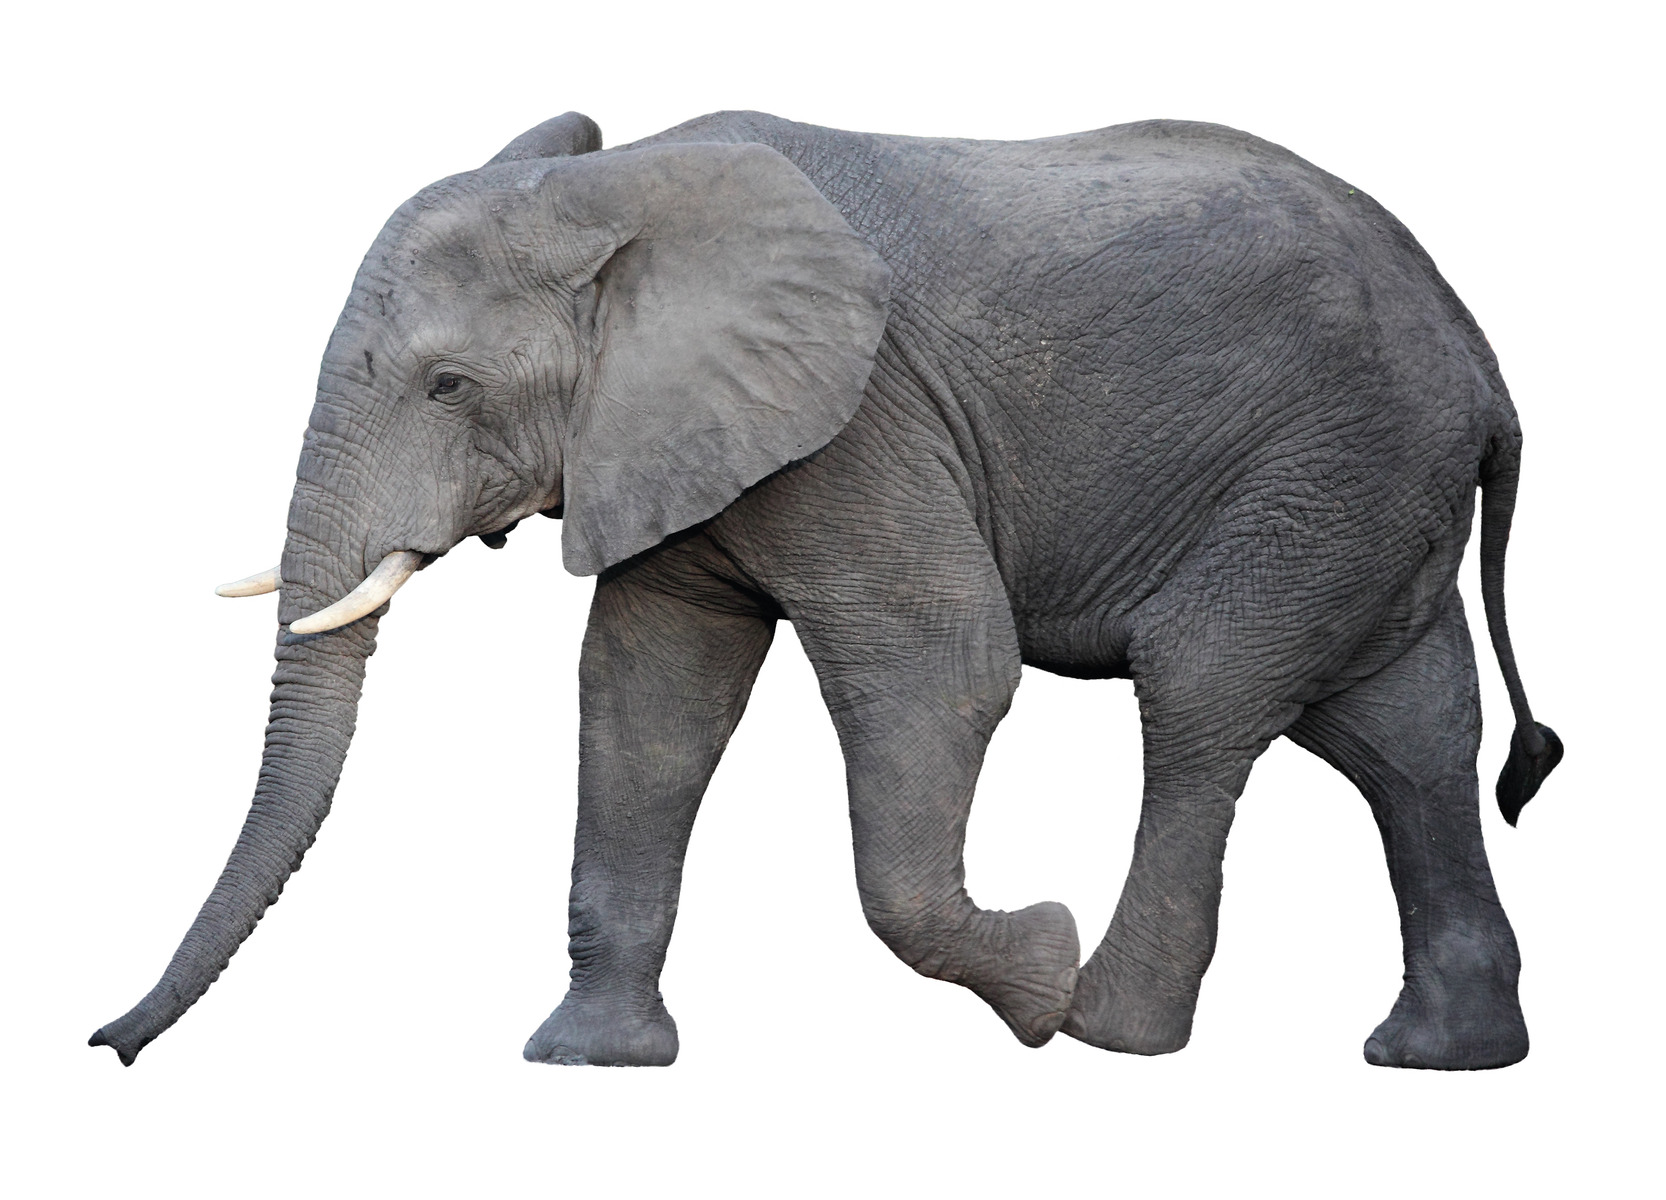 Elephant adults only similar. And